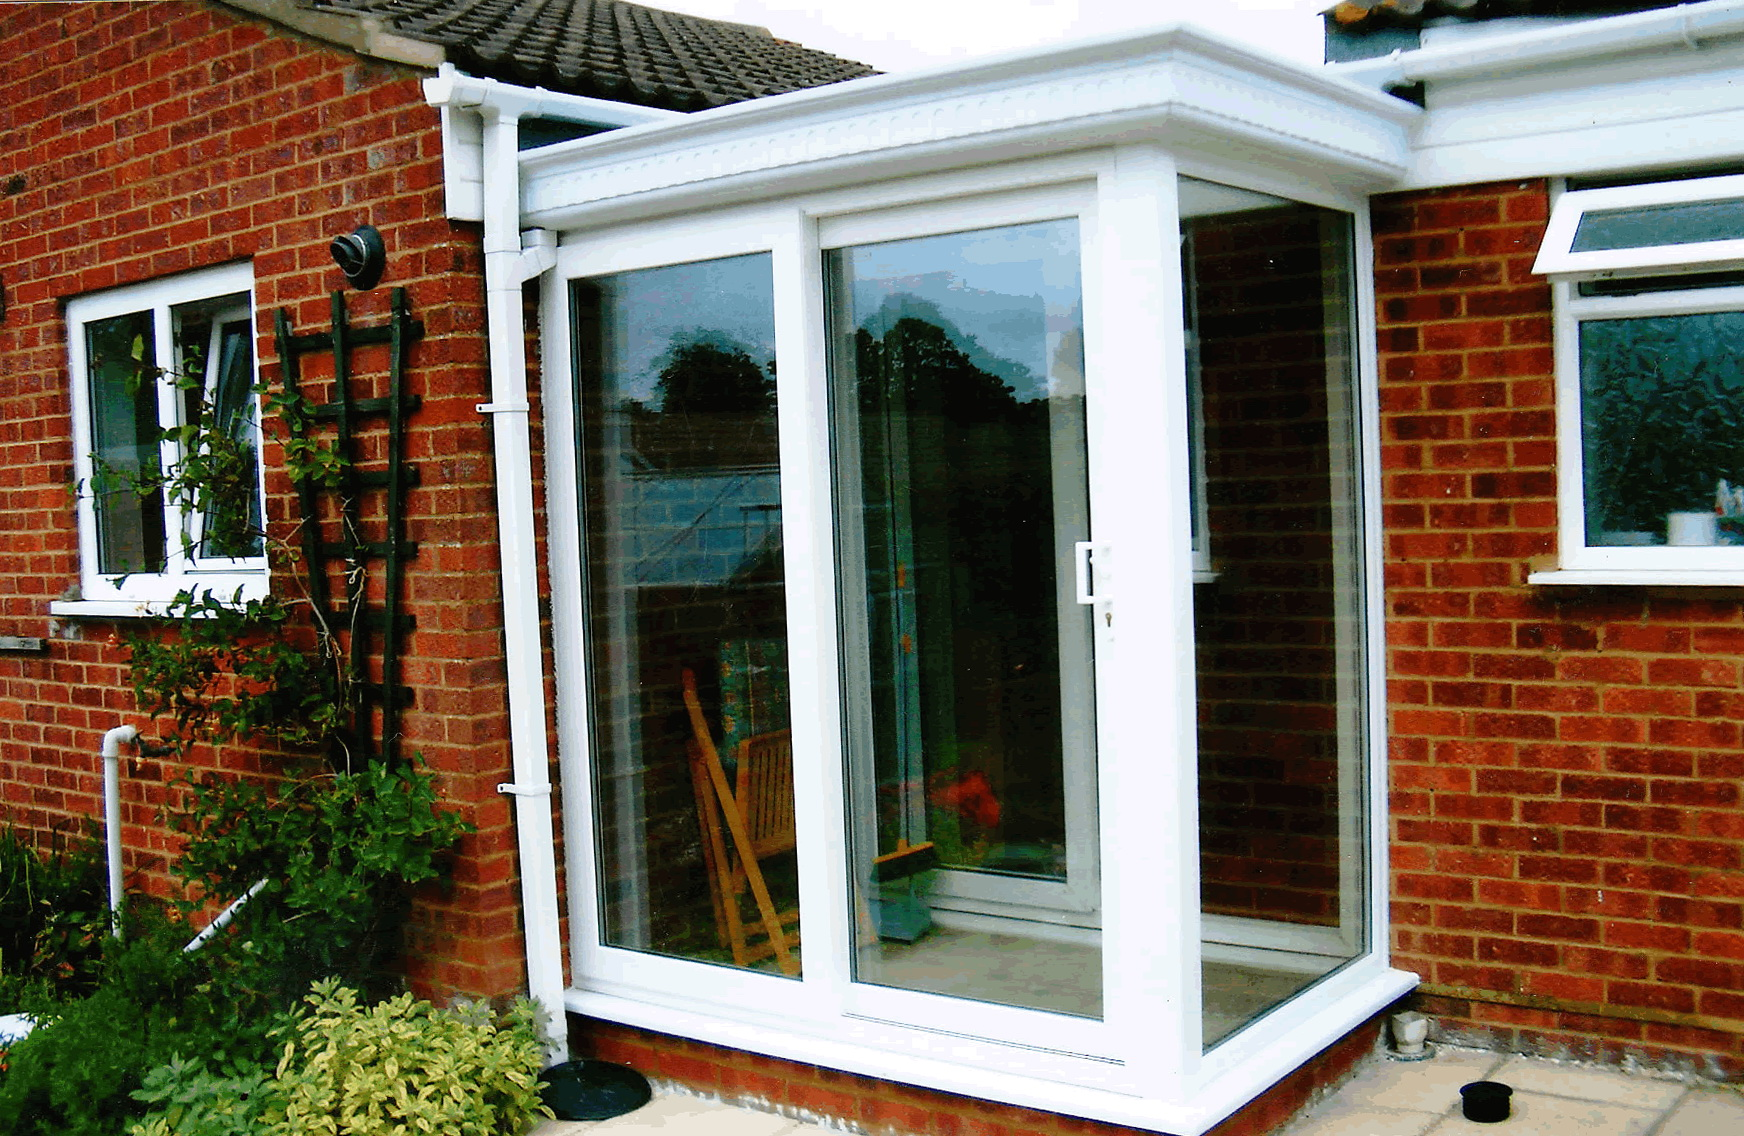 Flat roof porch designs uk home design ideas for Flat roof porches